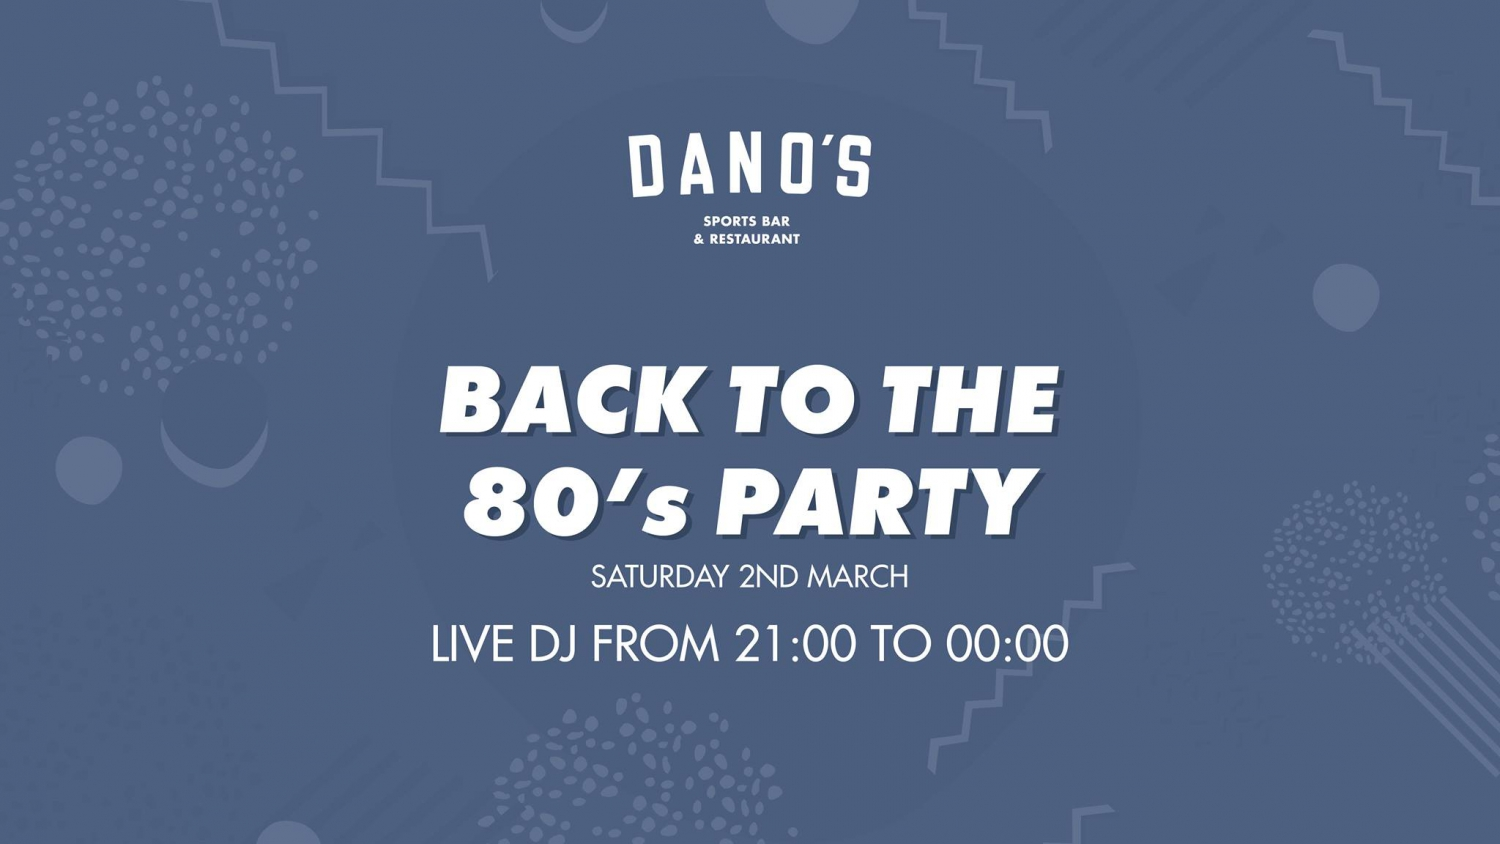 Back to the 80s Party at Dano's